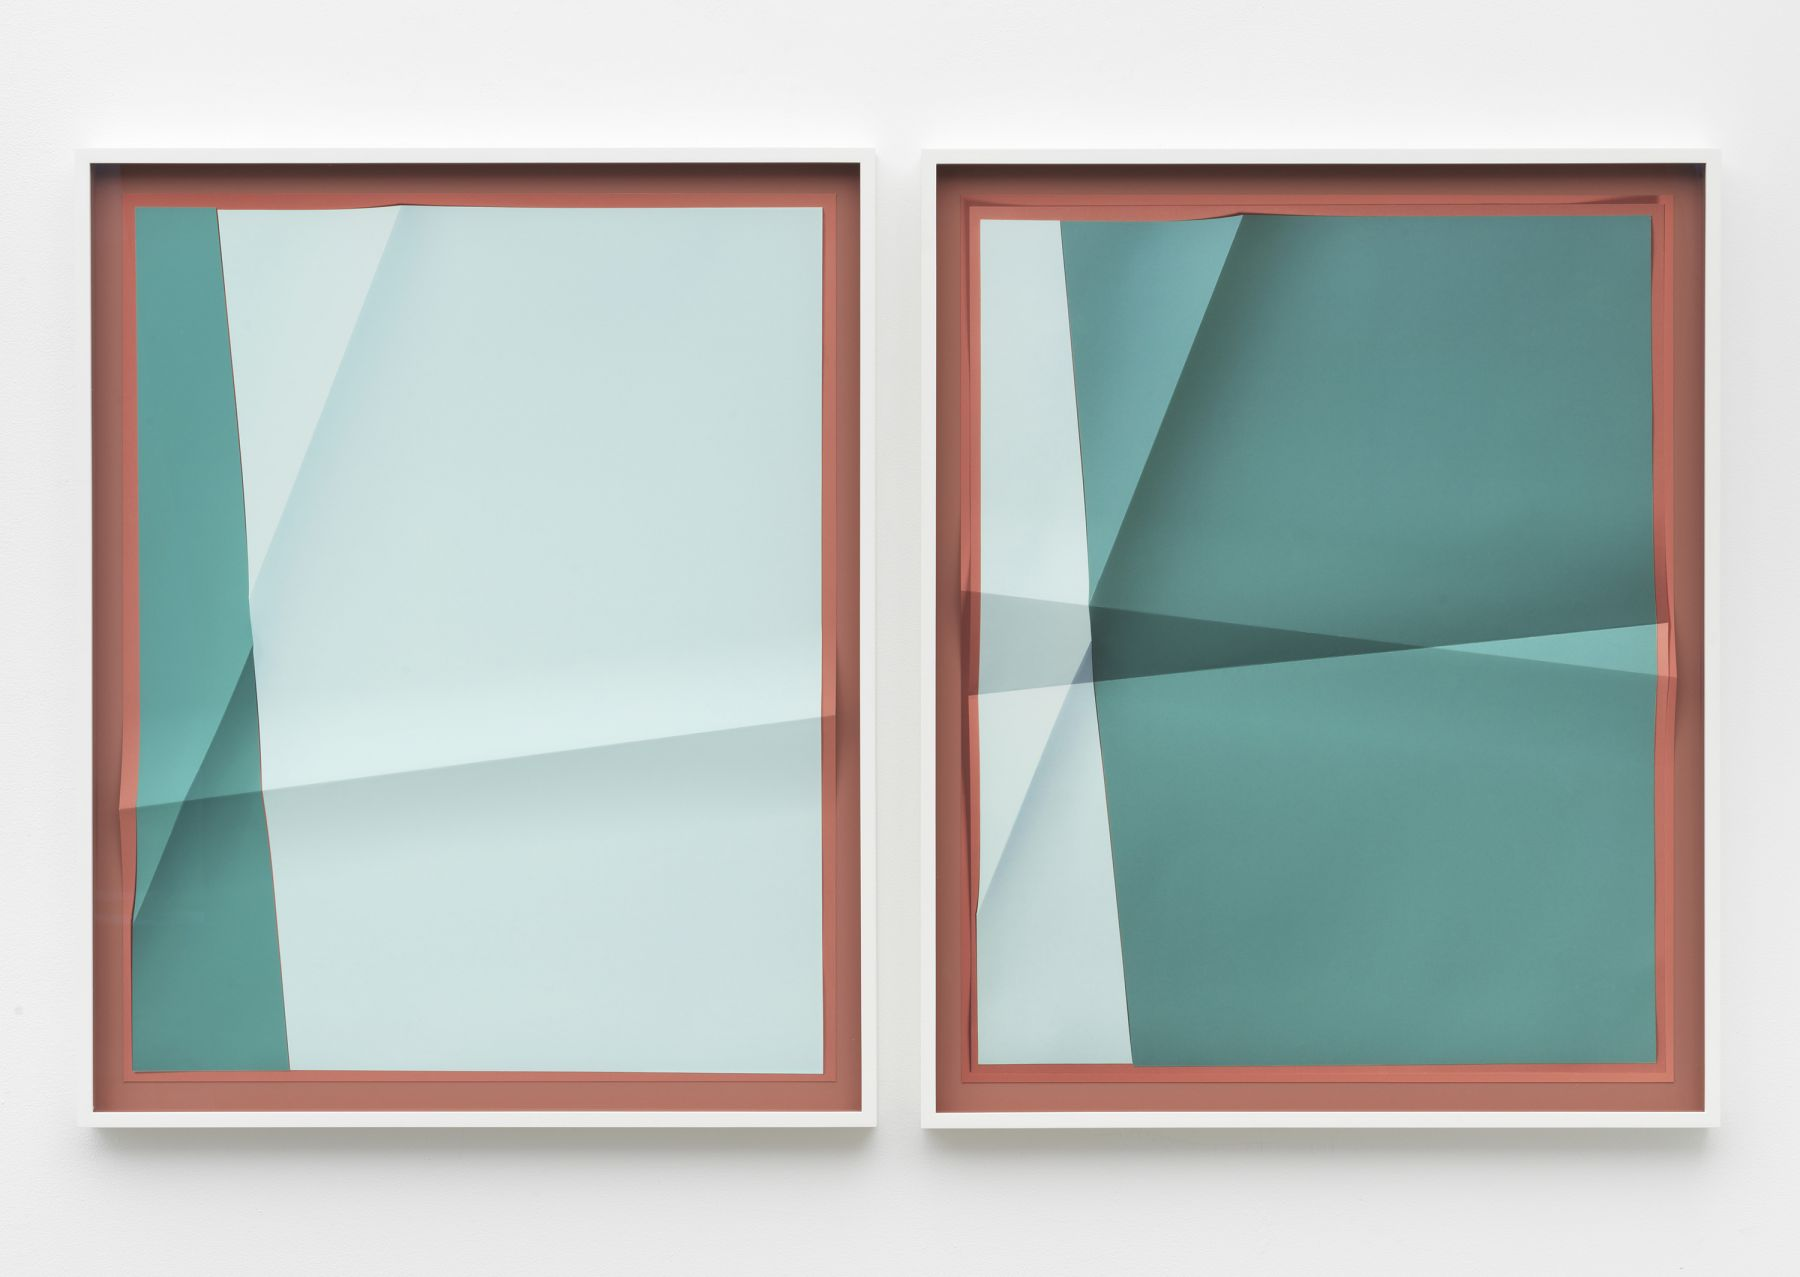 a folded print by John Houck as part of a fine art exhibition in New York